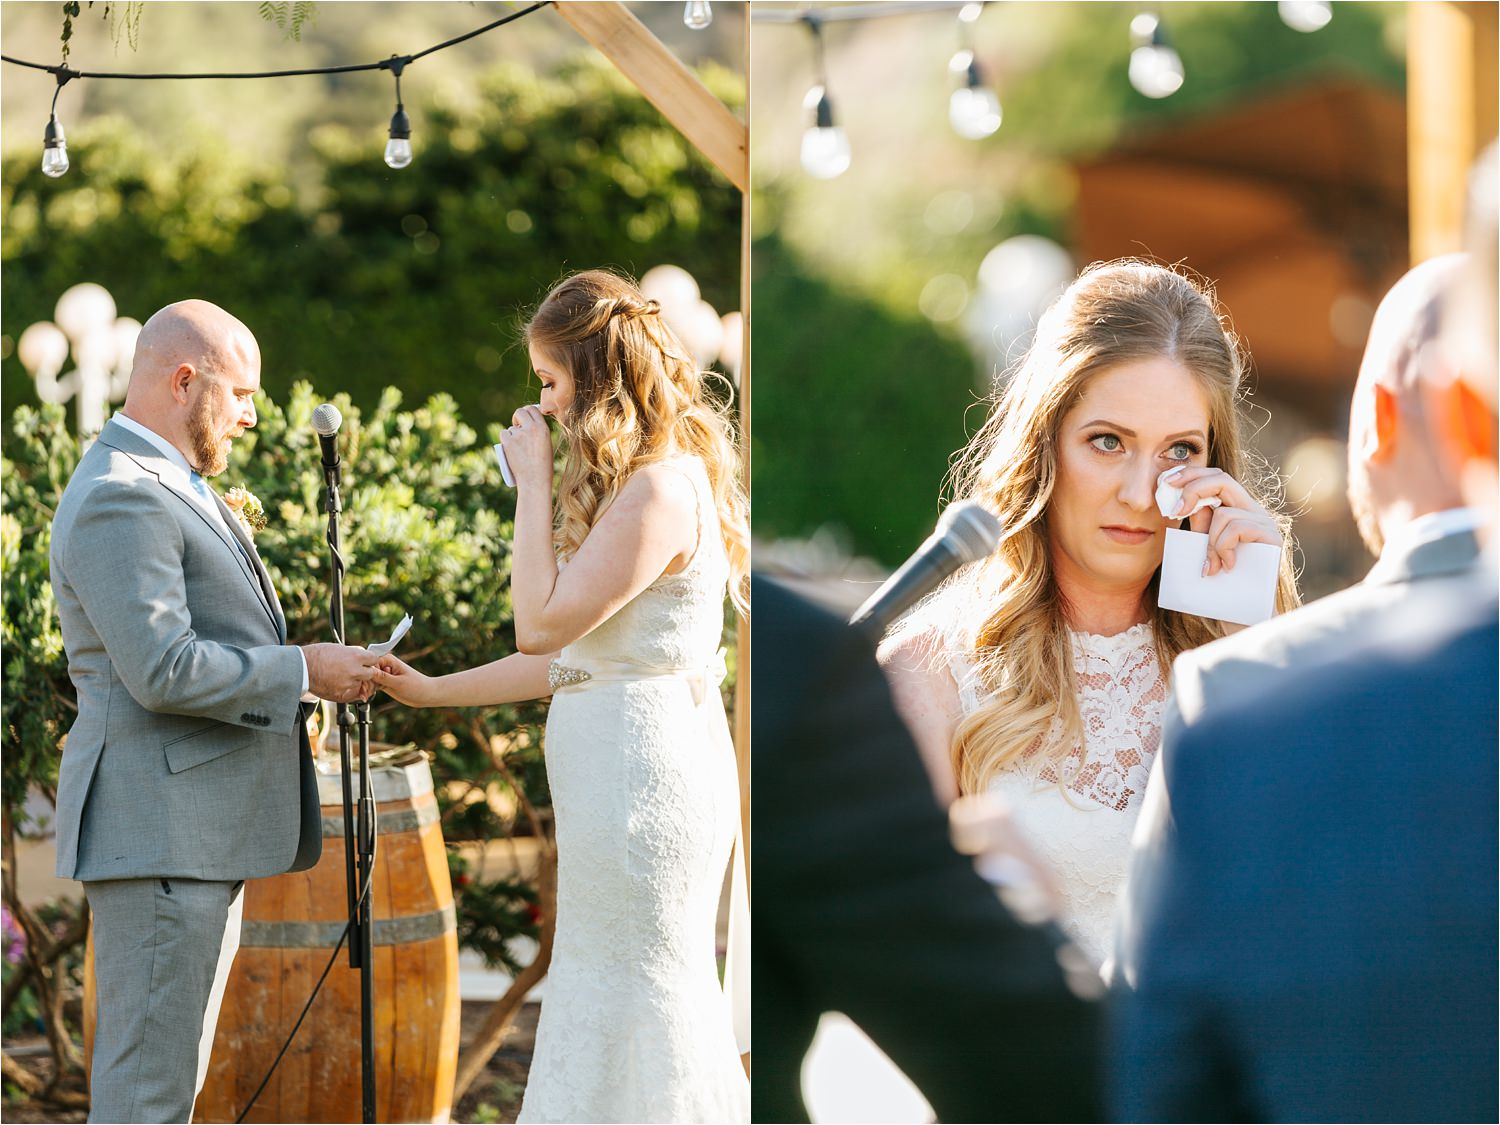 Sweet and emotional vows during wedding ceremony - https://brittneyhannonphotography.com